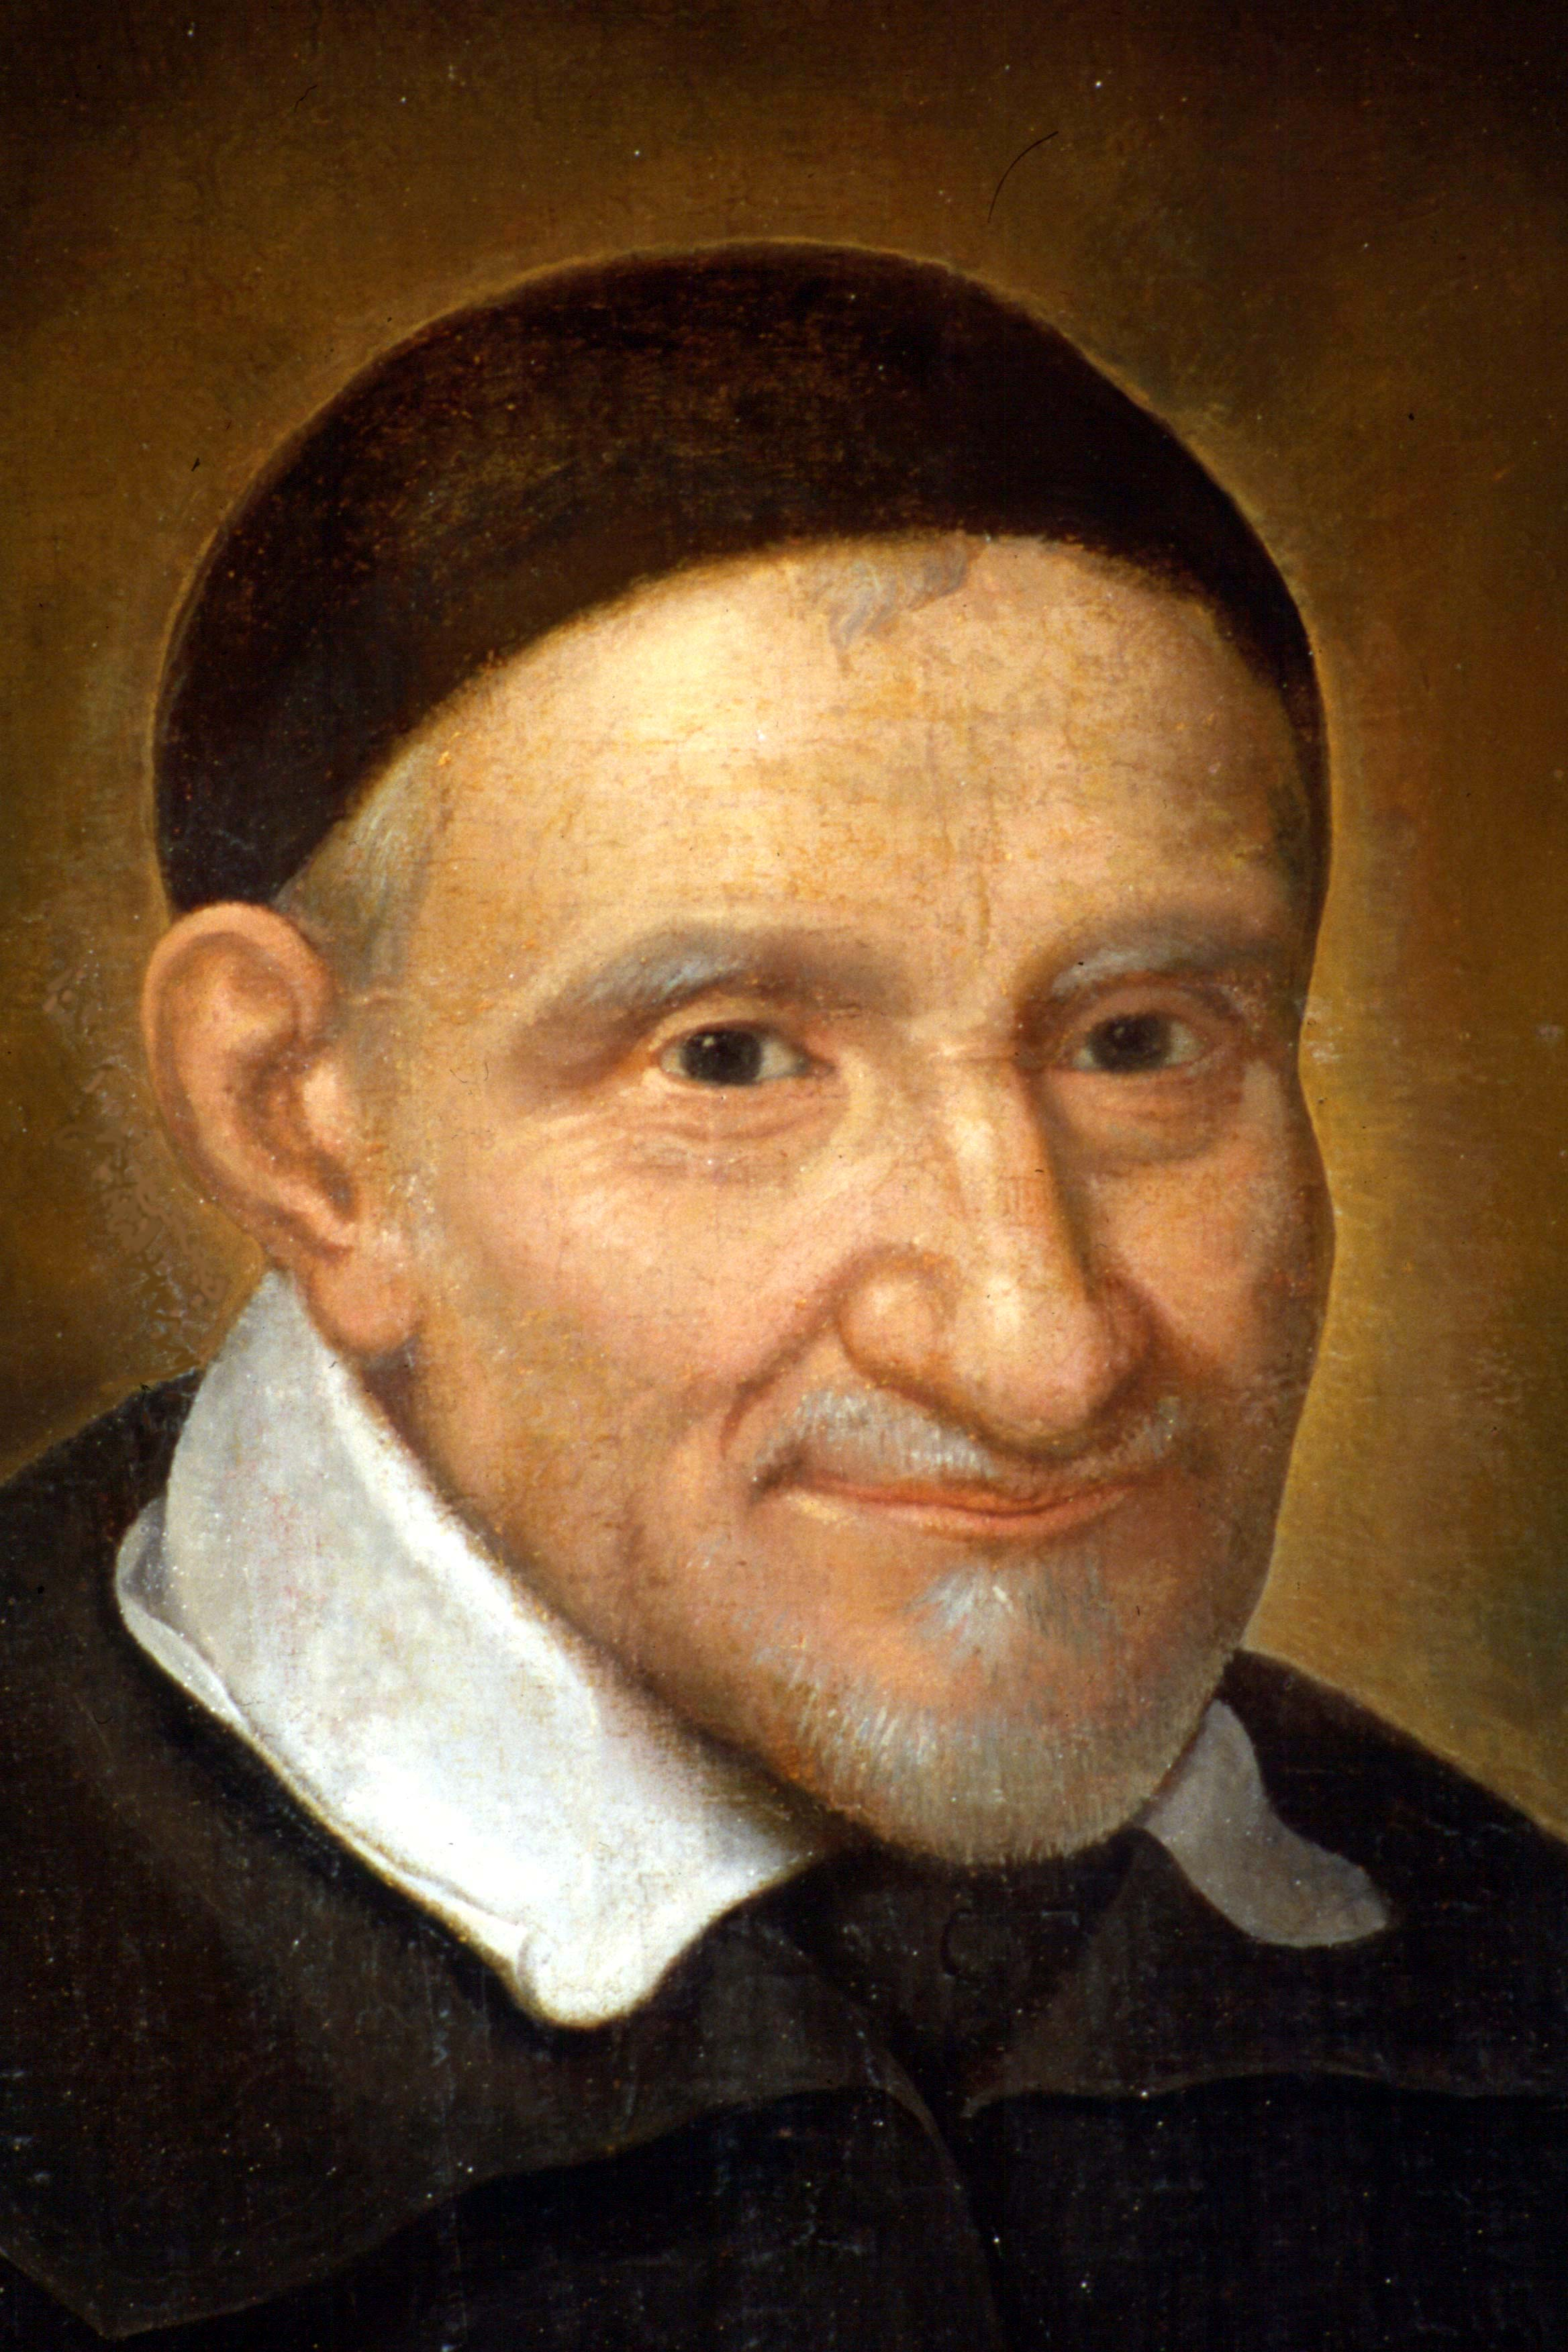 St Vincent de Paul_Paris, Maison mere, de Tours portrait detail.jpg